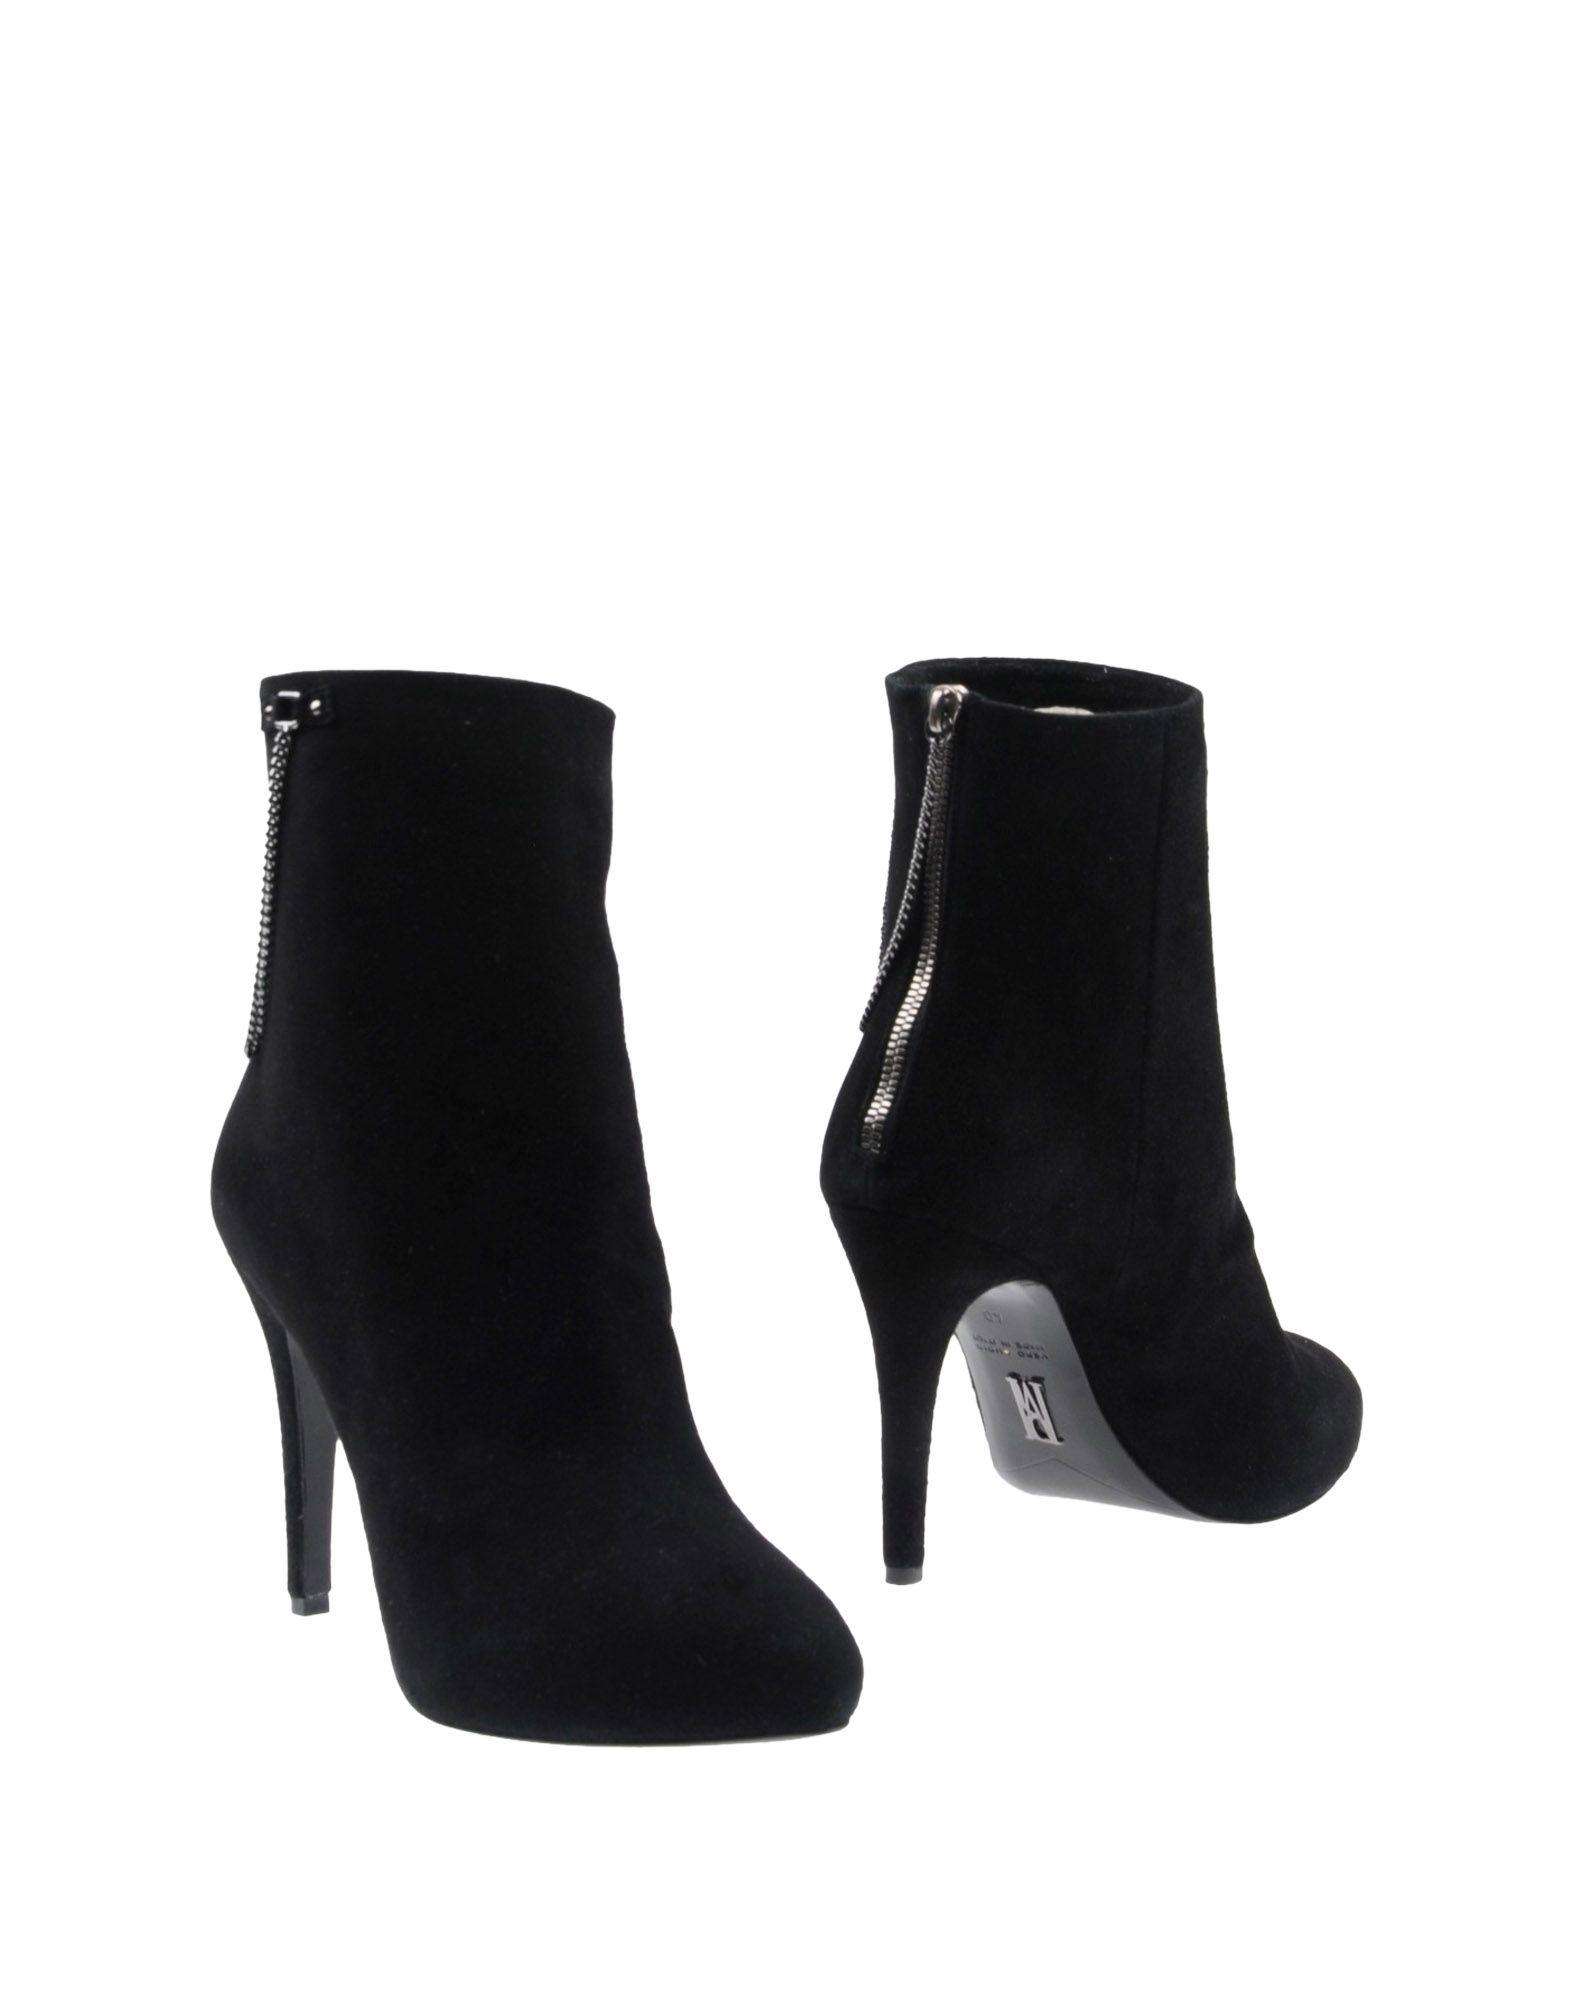 RODOLPHE MENUDIER Ankle Boots aA38Hd25